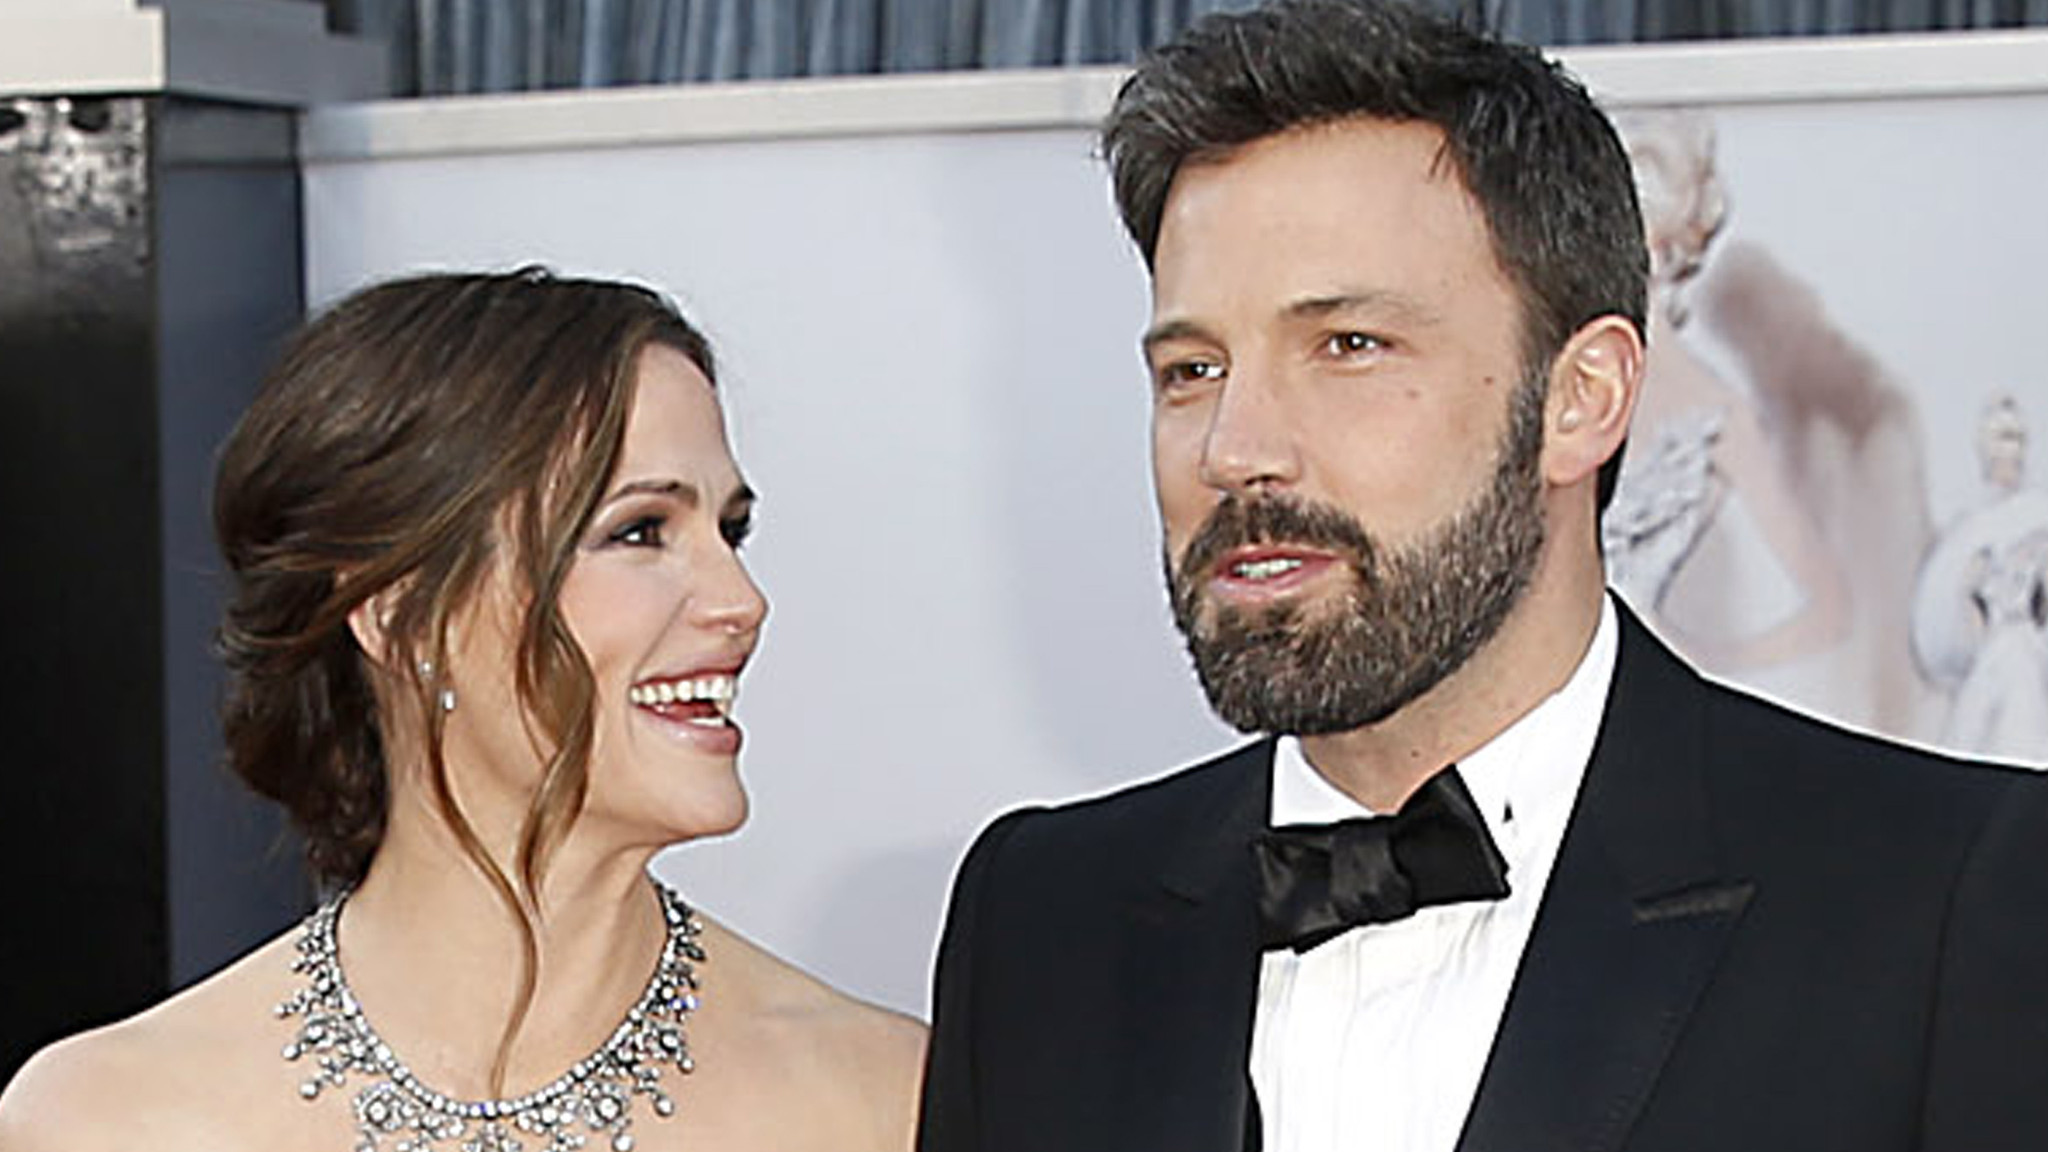 Ben Affleck and Jennifer Garner are getting a divorce